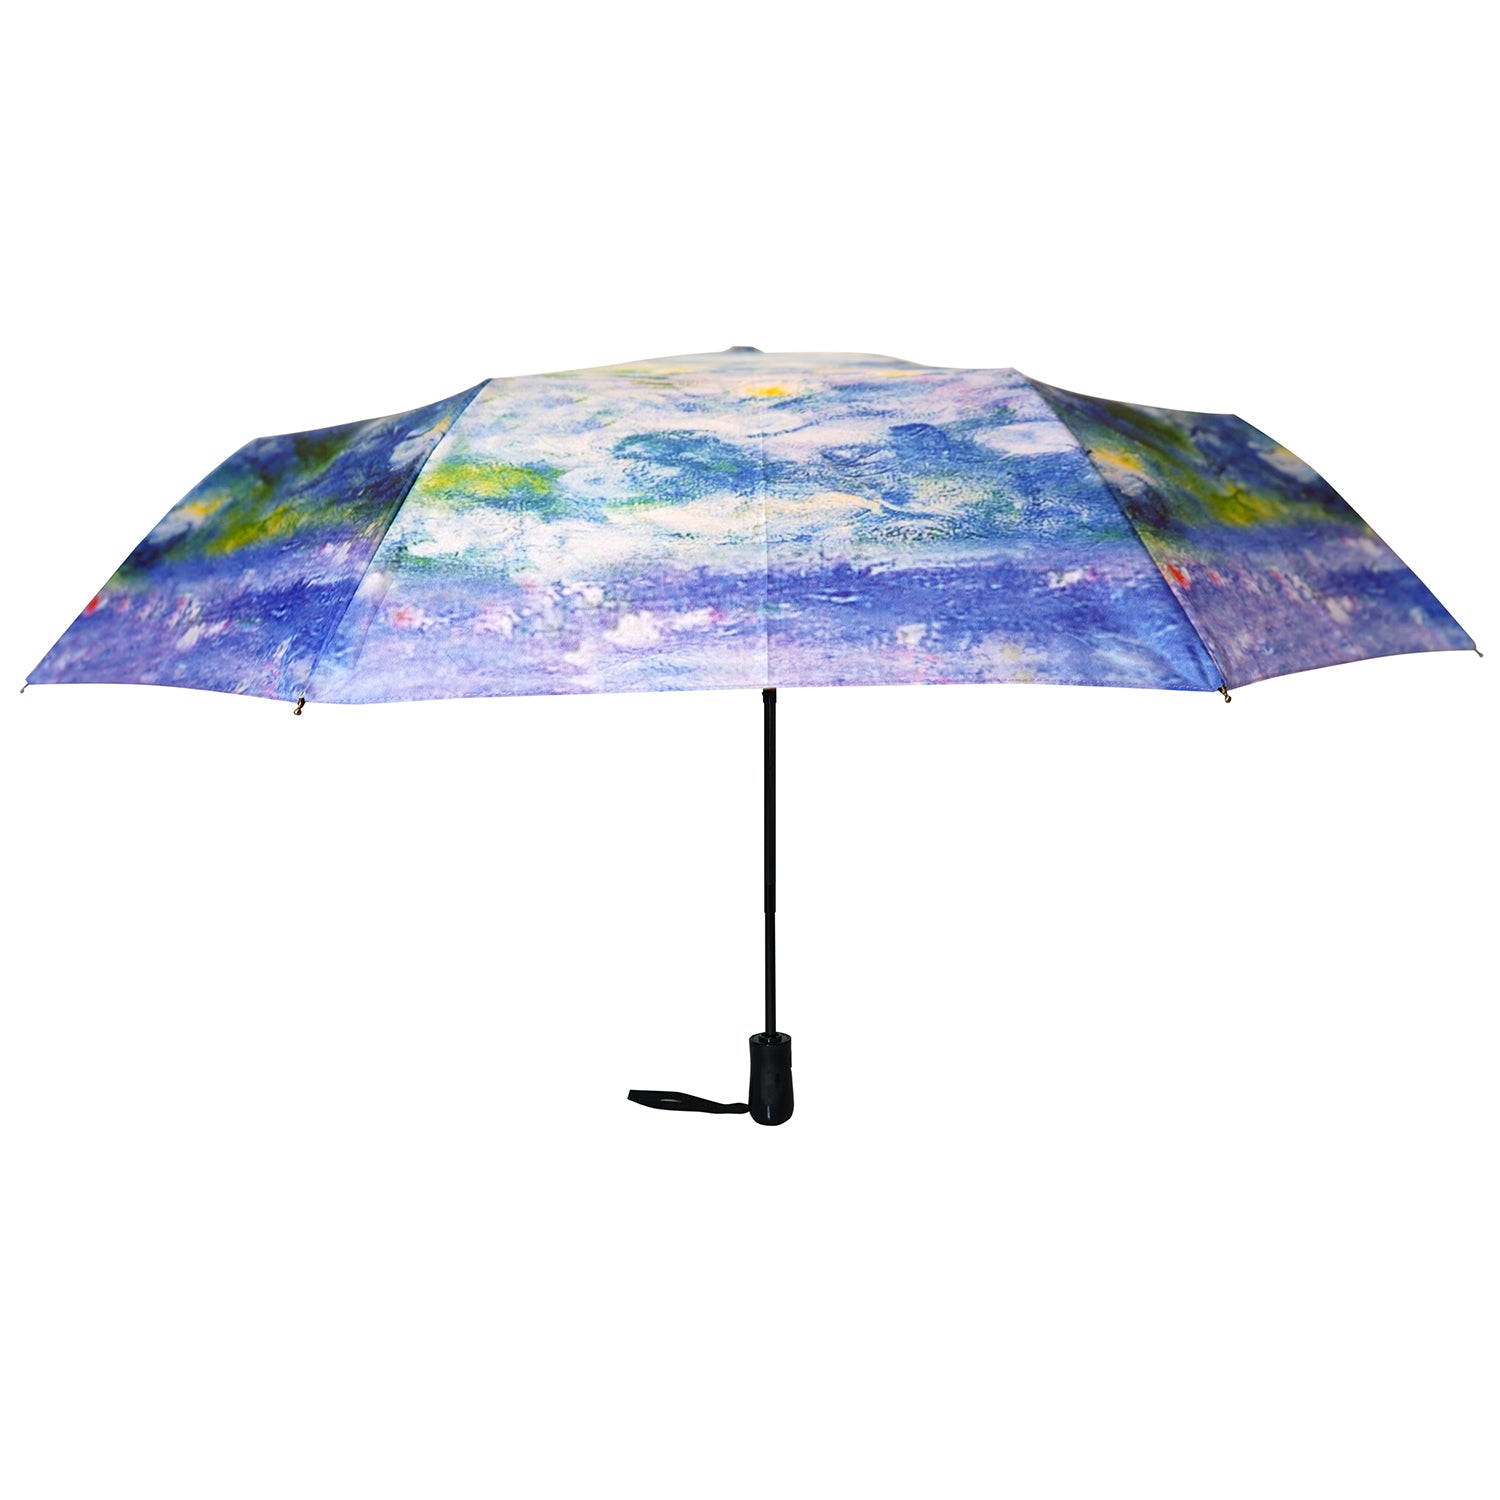 "Monet's Waterlilies 12"" Mini Auto Open and Close Premium Umbrella"